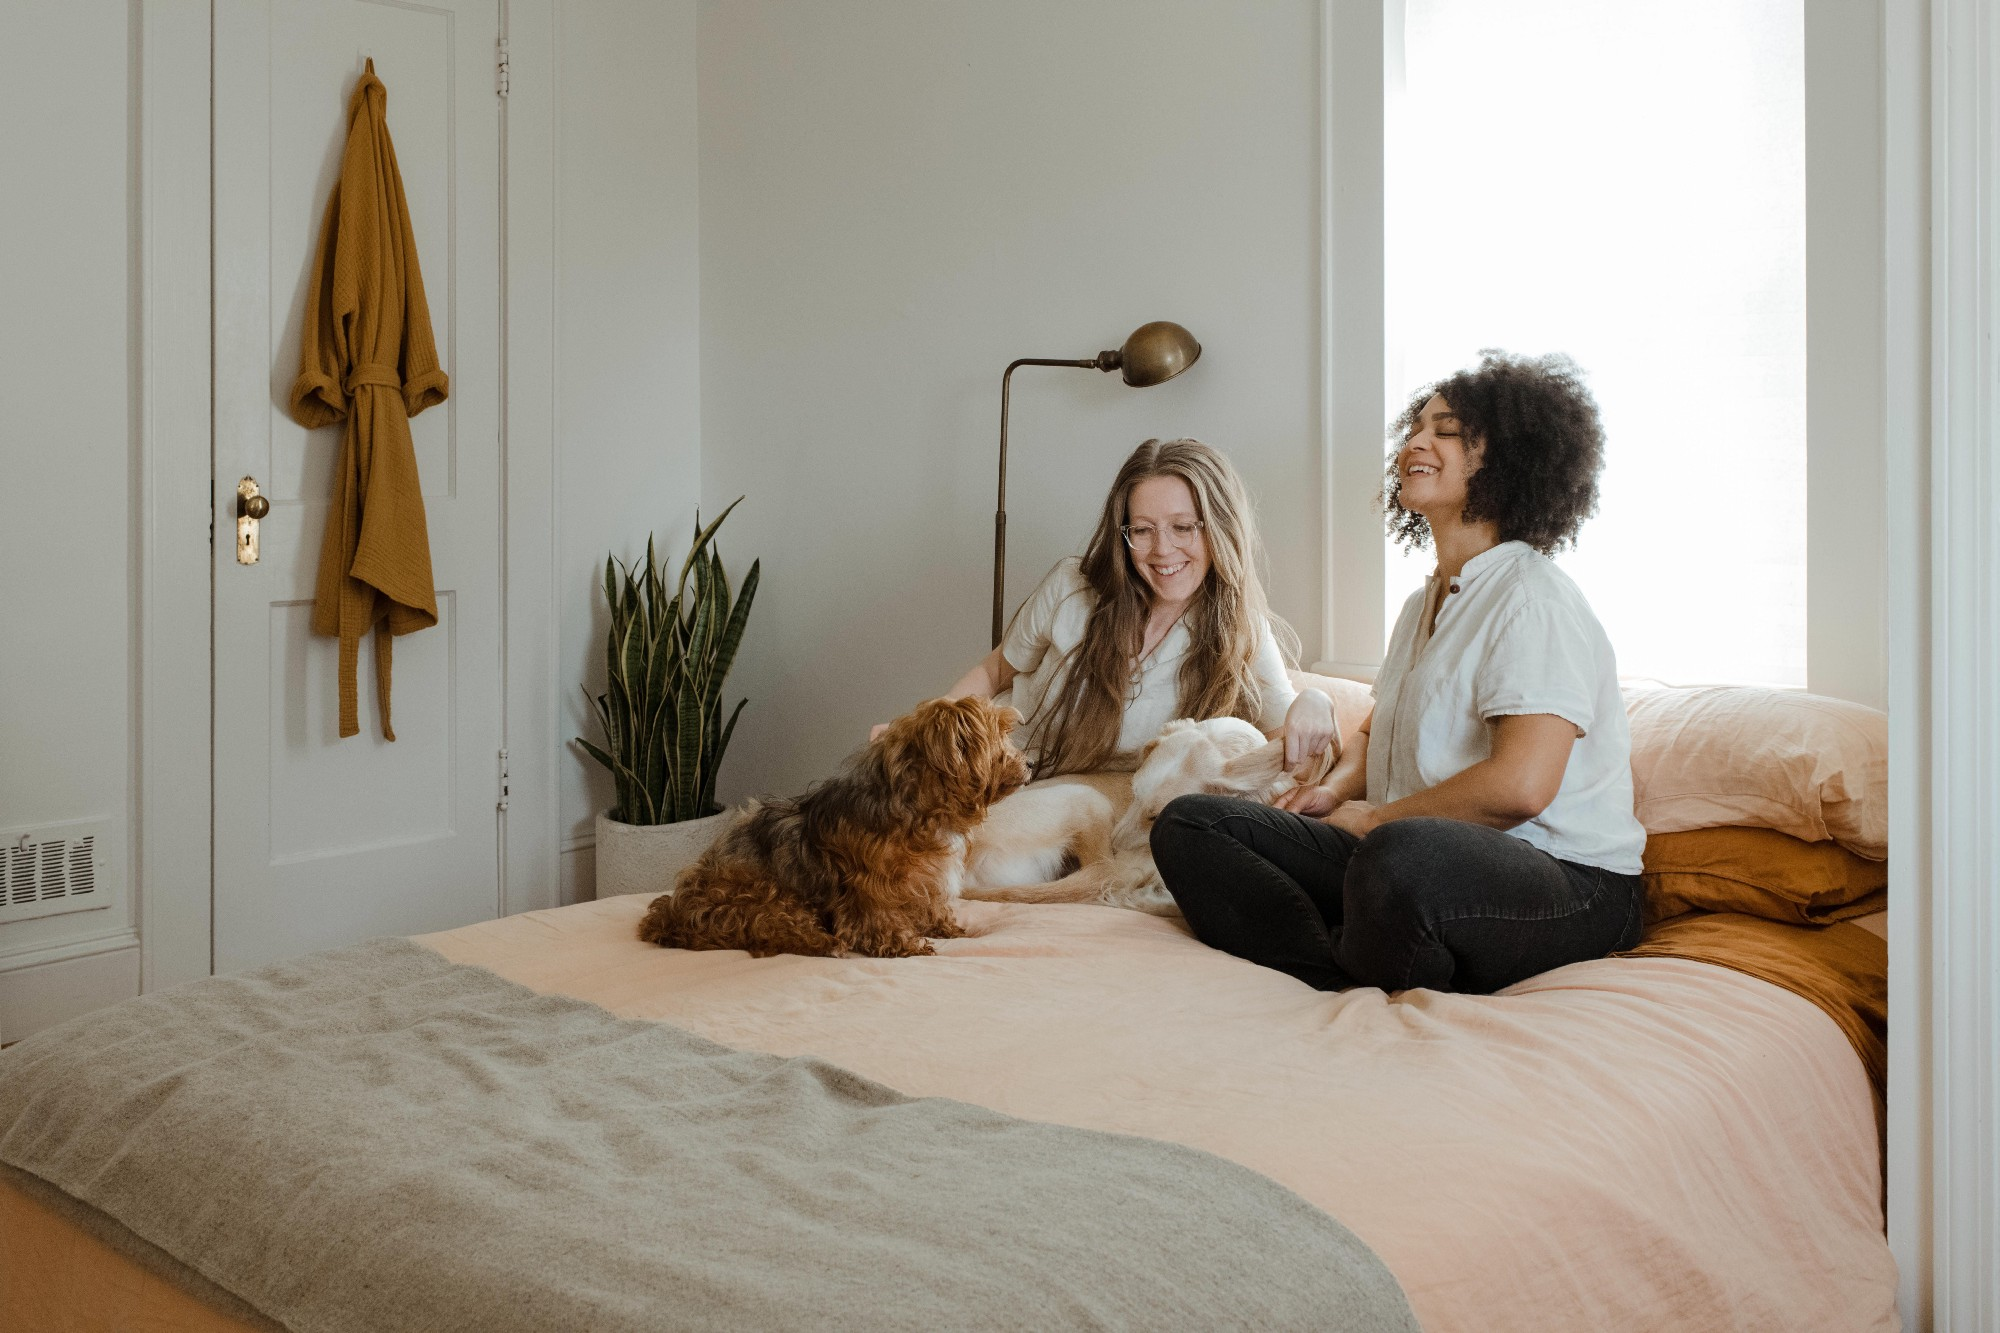 two women and a dog sitting on a bed